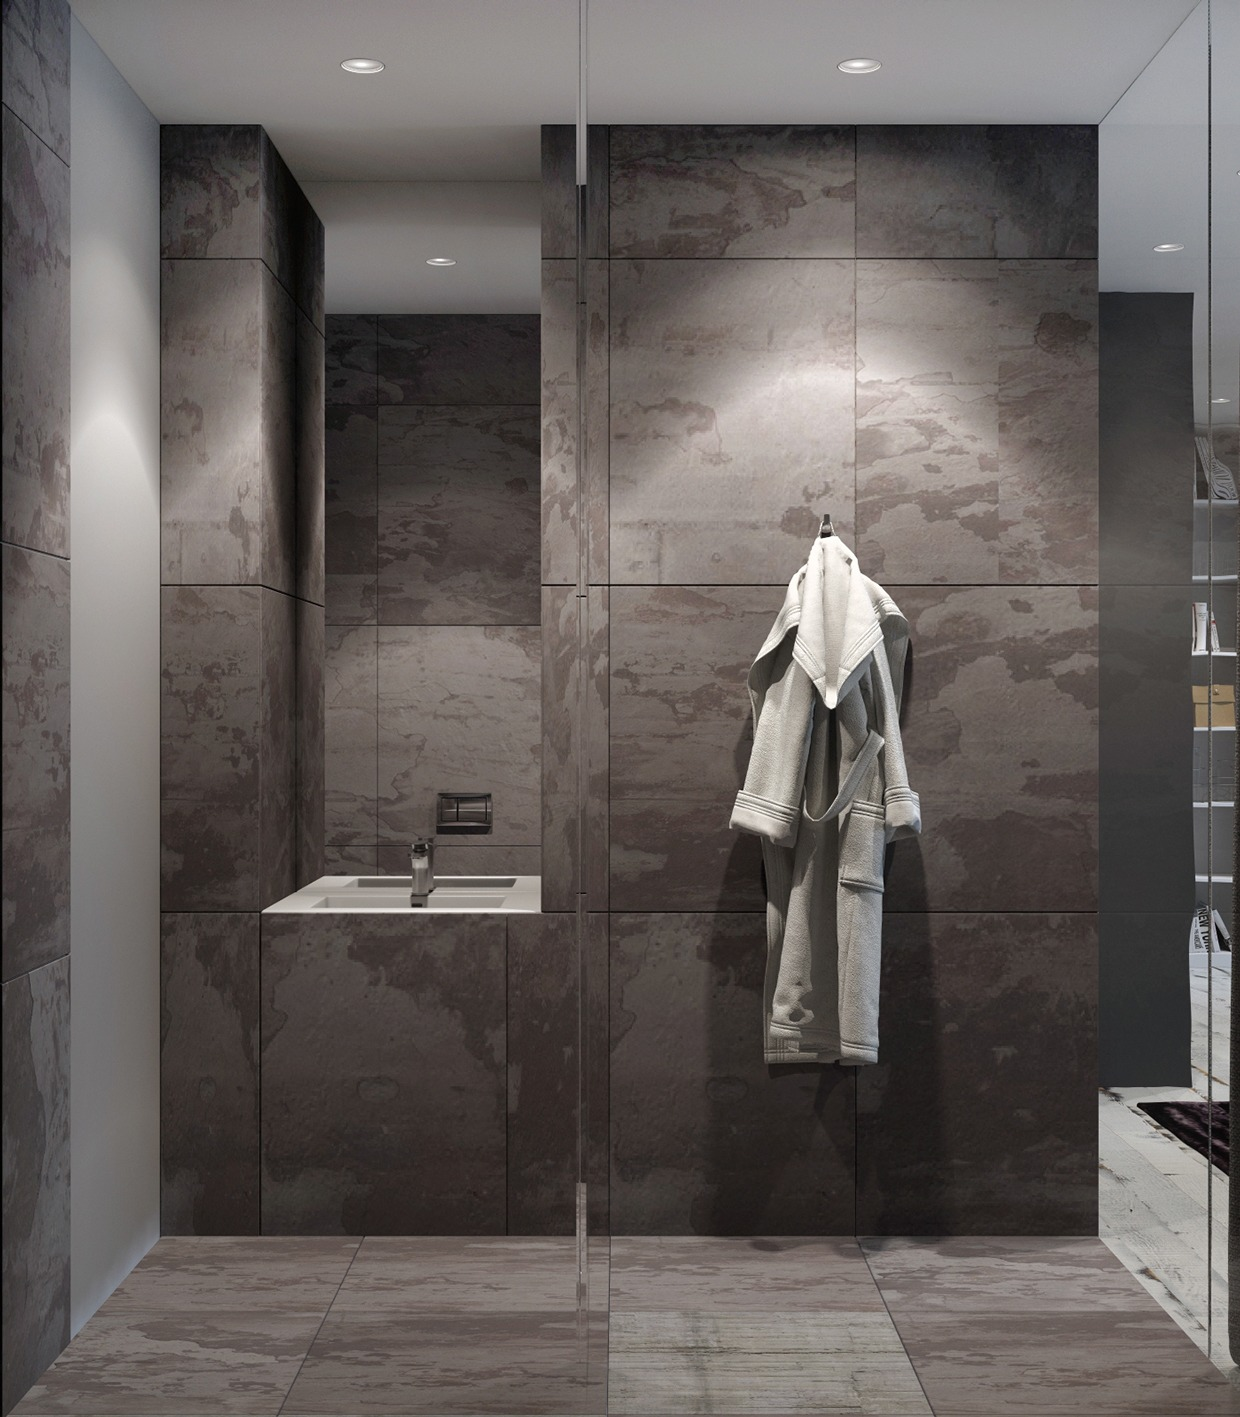 Slate Tiles - 4 homes from the same designer showcase a diversity of style